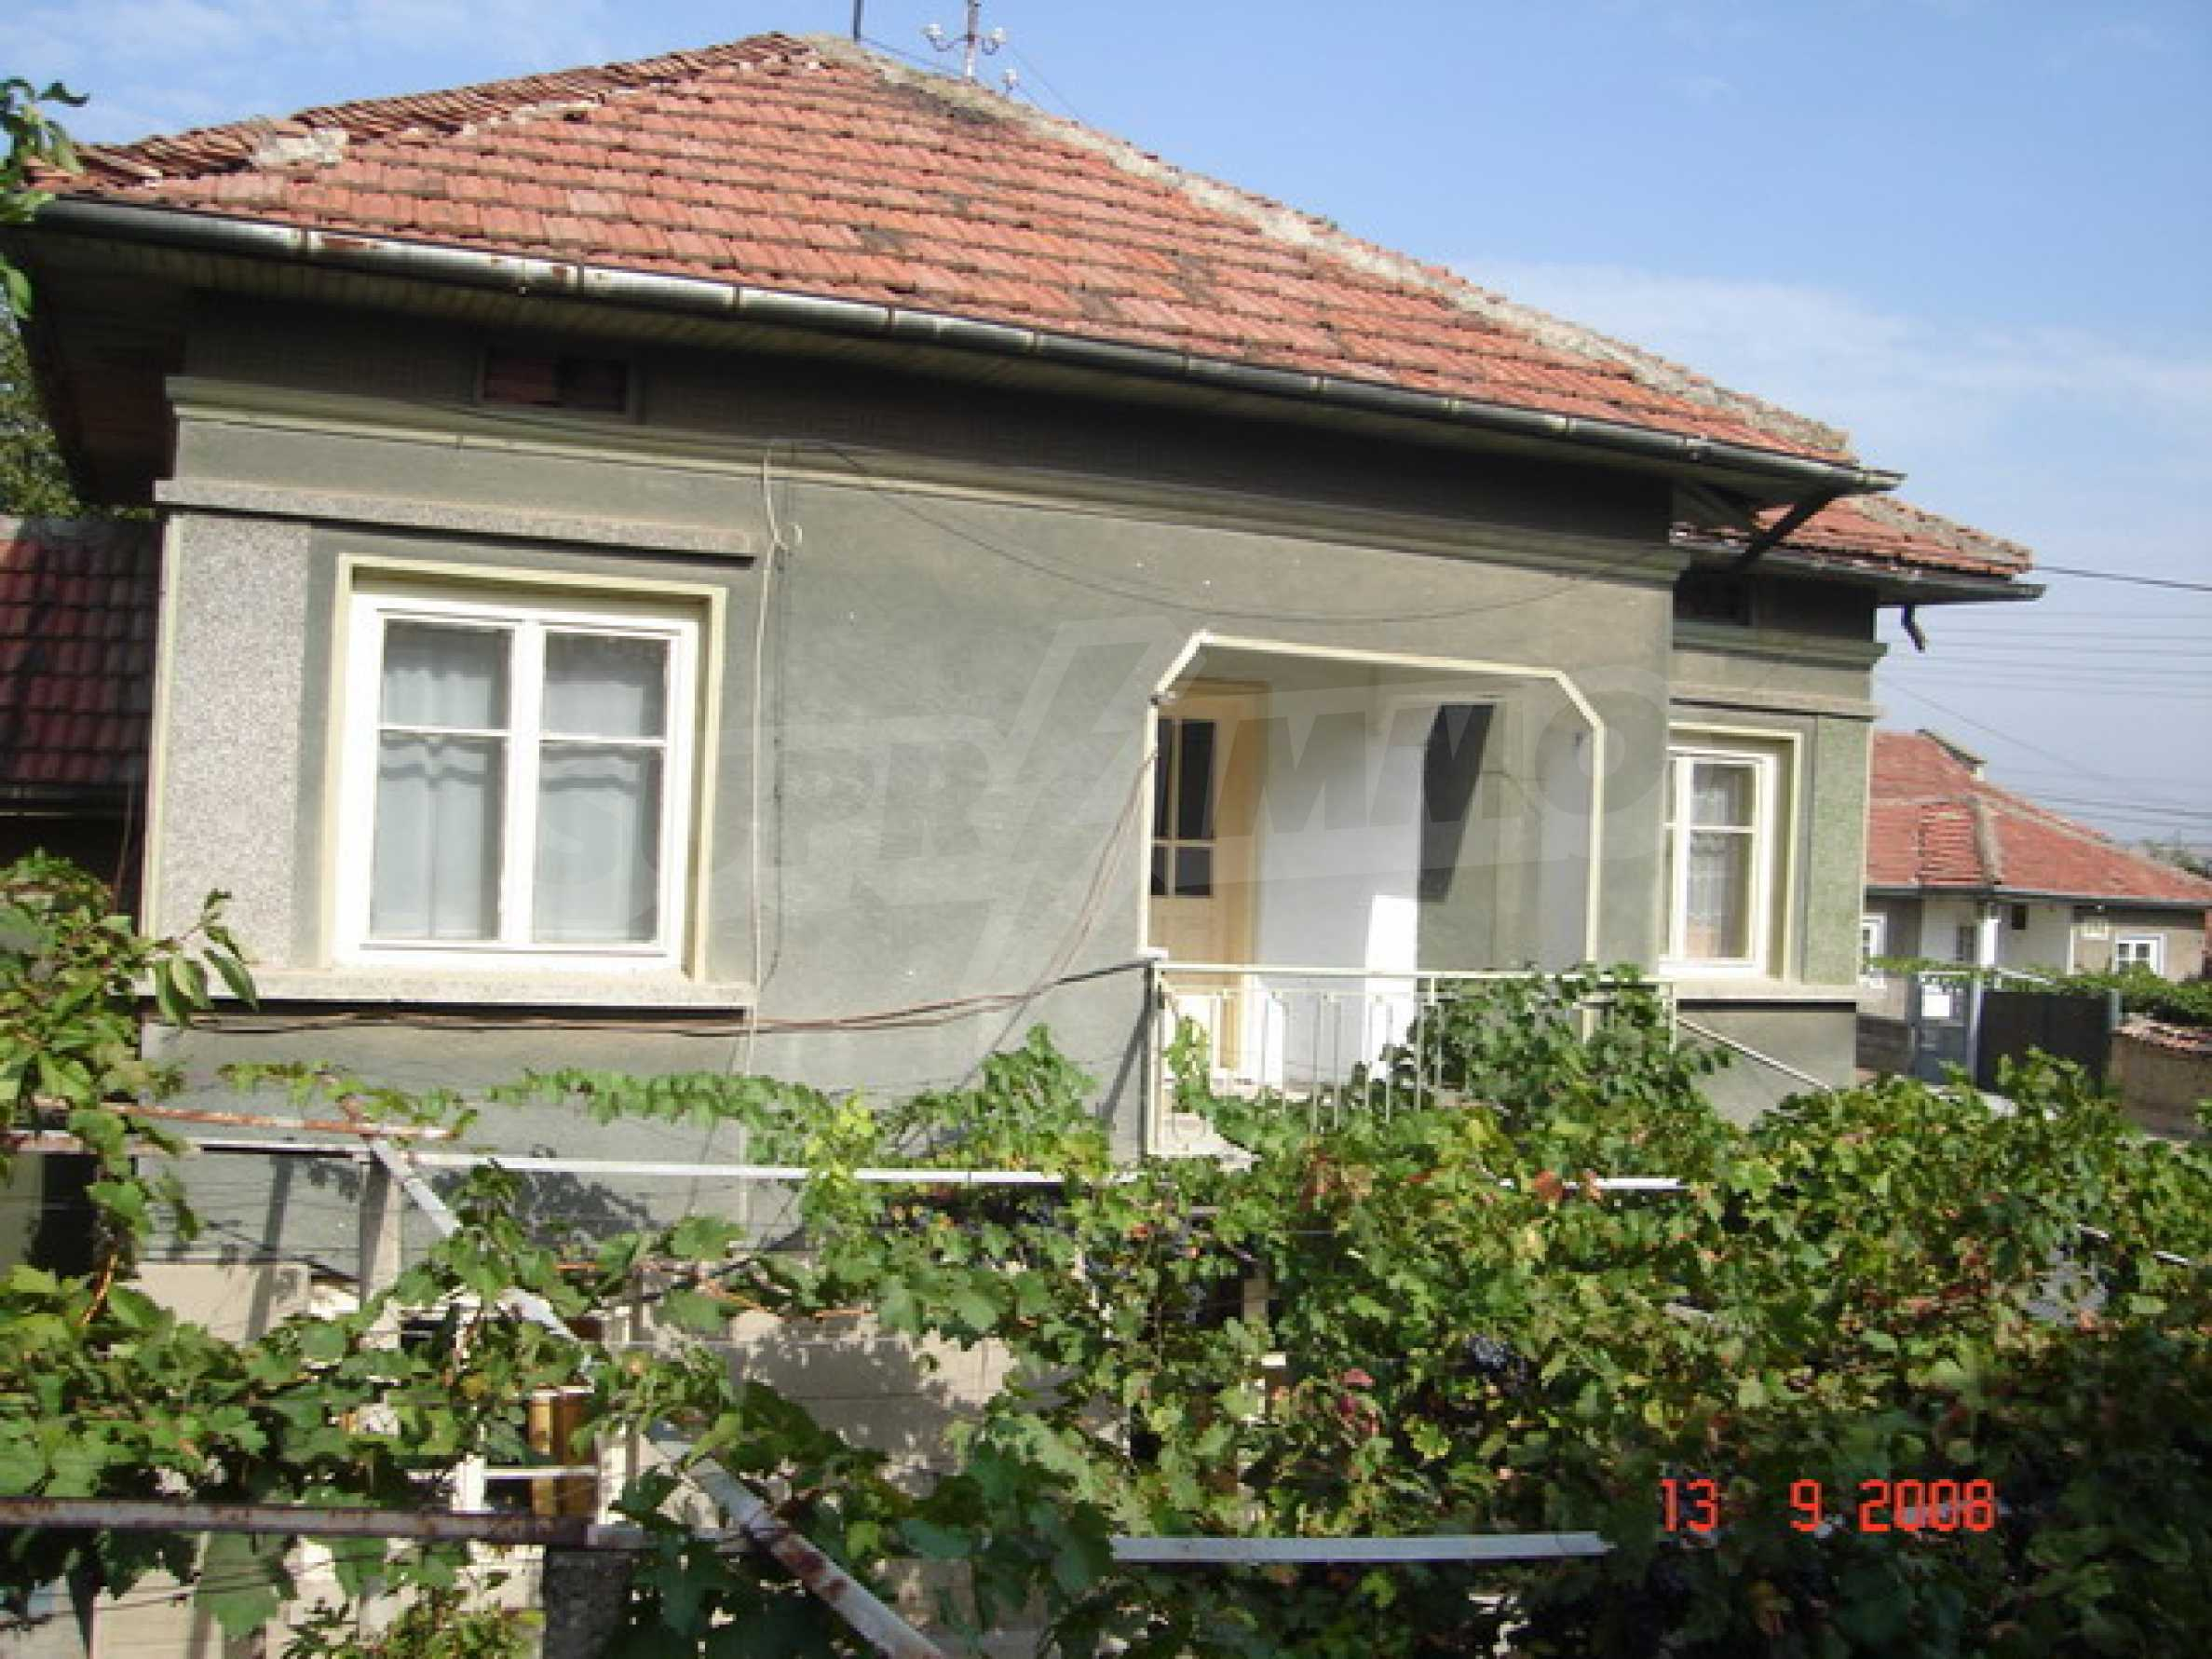 House near the Danube river 2